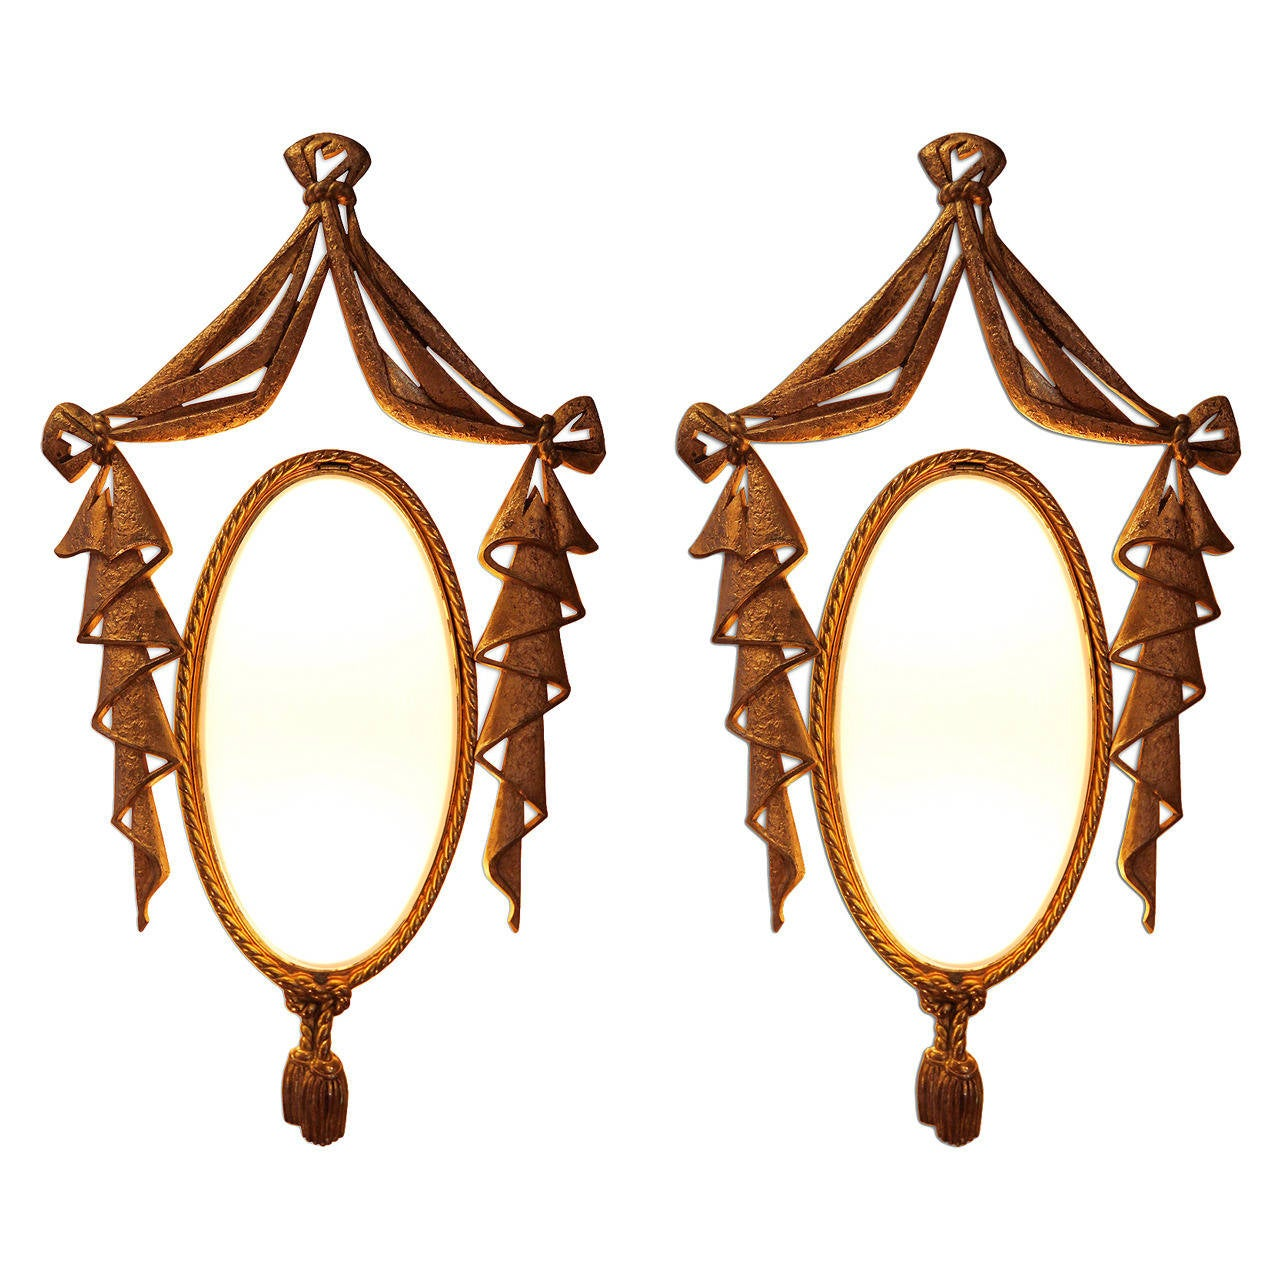 Very Elegant Pair of Bronze Sconces by J. Barat 1